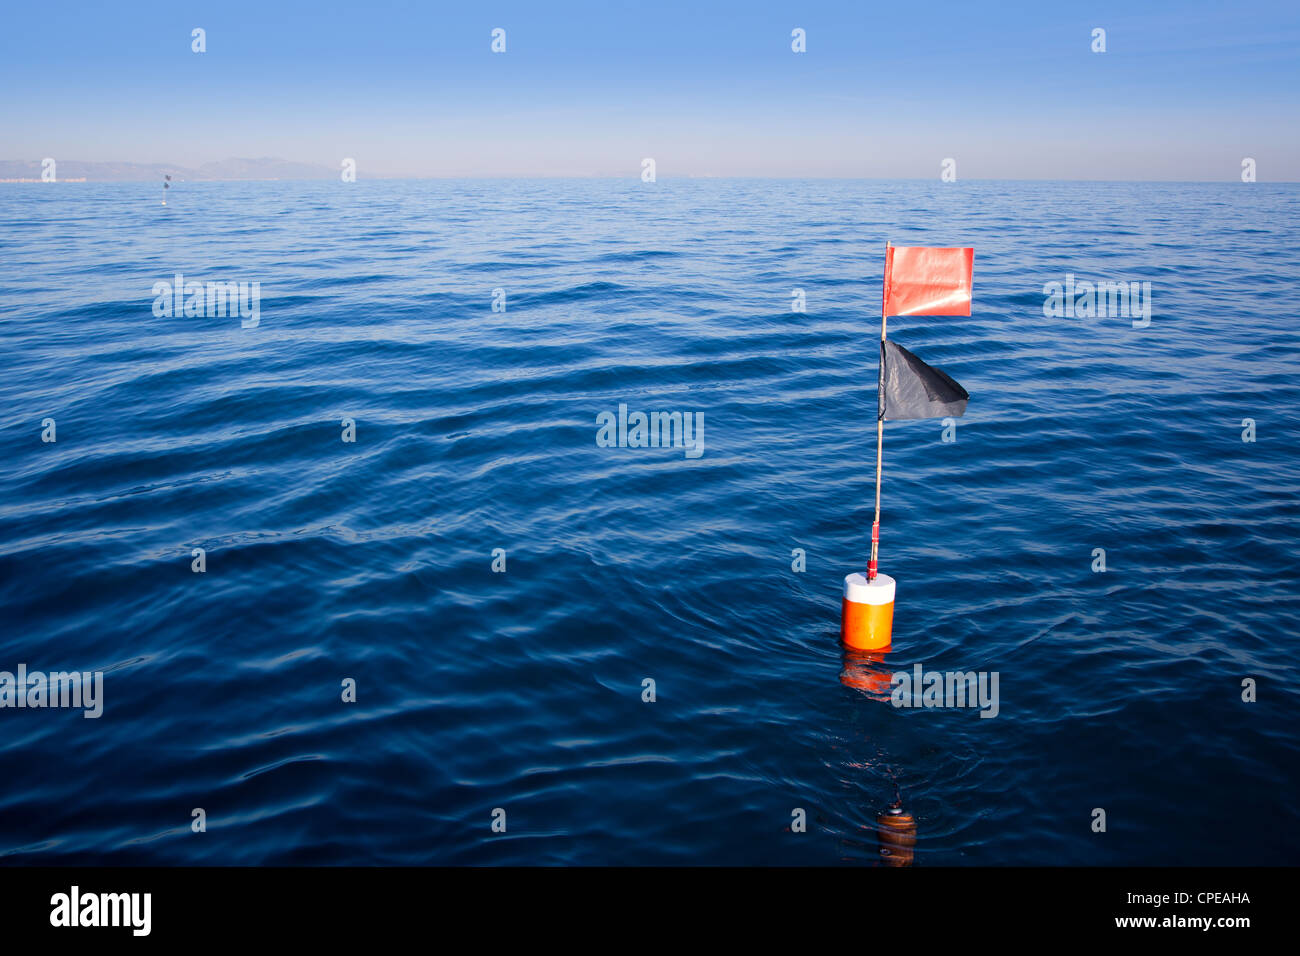 Longliner and trammel net buoy with flag pole in blue sea - Stock Image